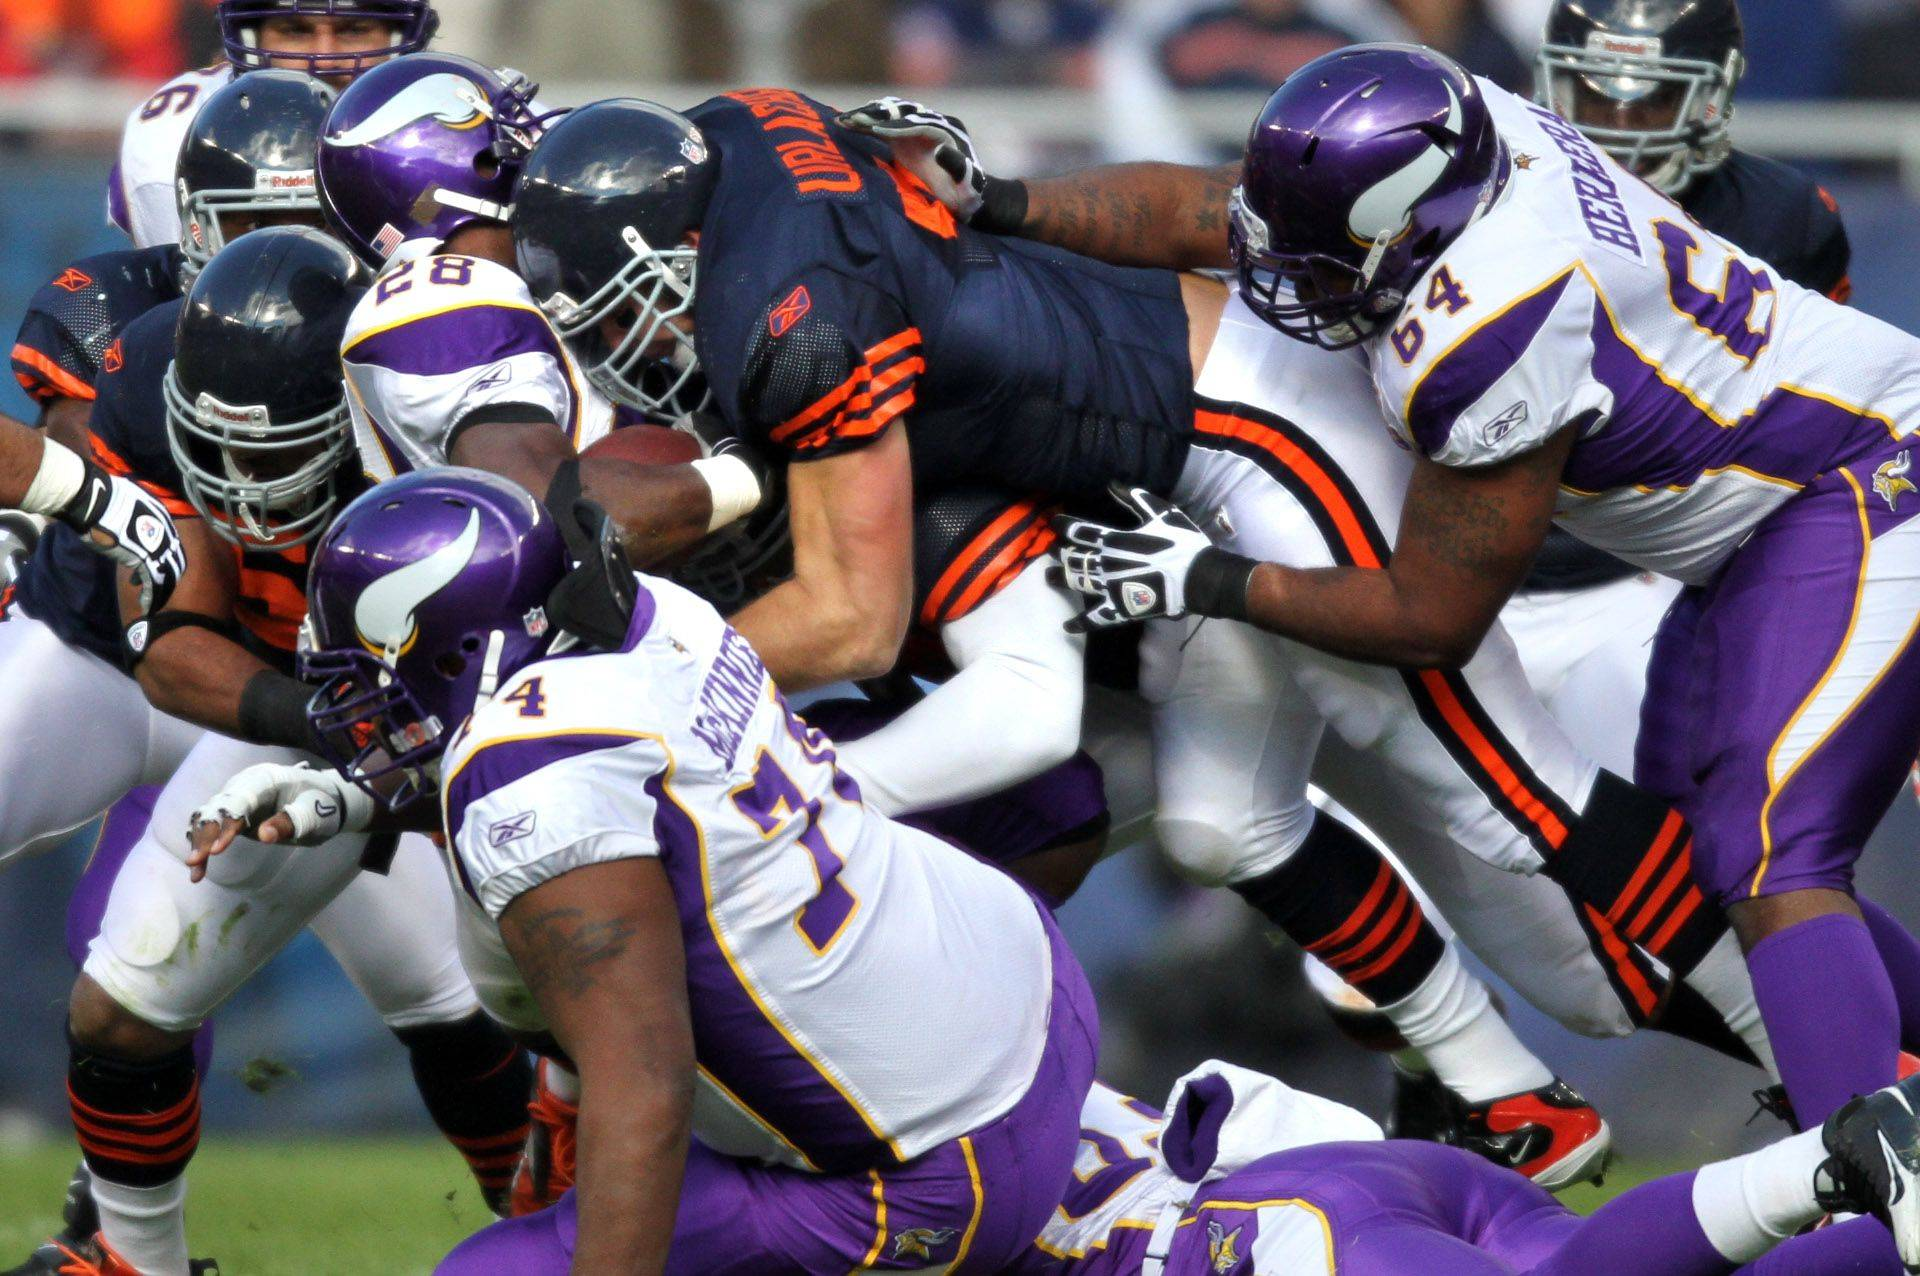 Chicago Bears' Brian Urlacher locks up Minnesota Vikings' Adrian Peterson.